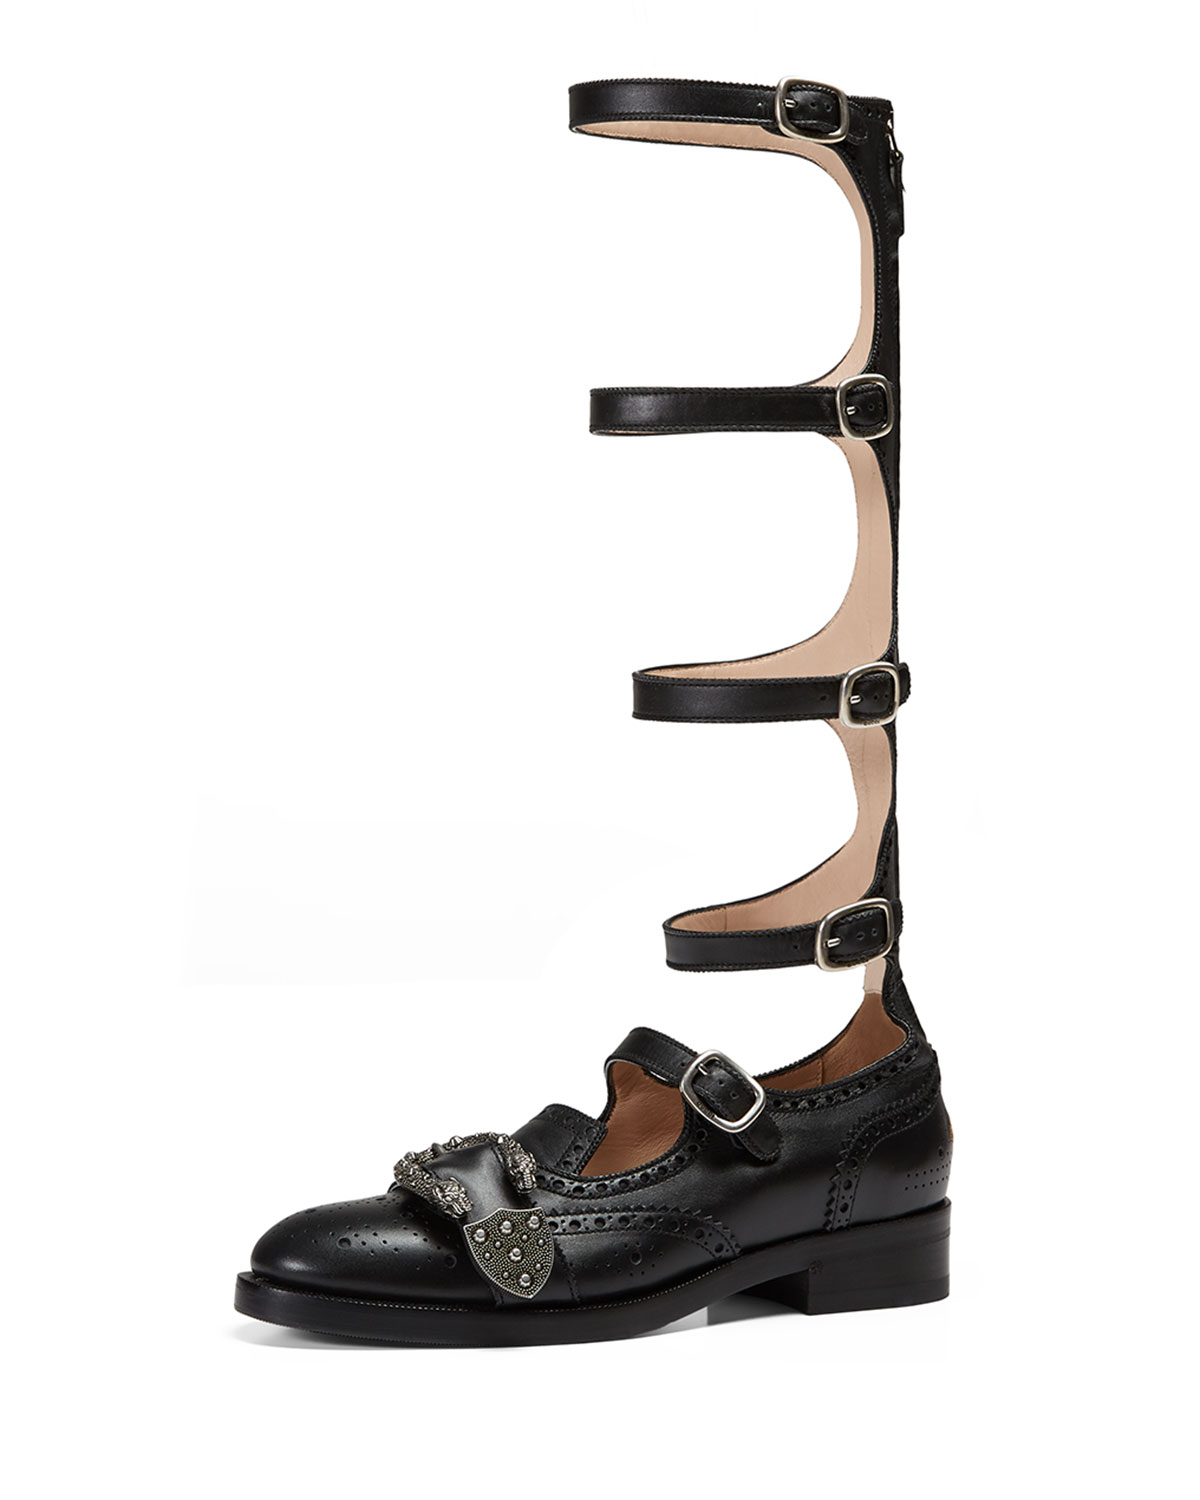 Leather Brogue Gladiator Boot, Black